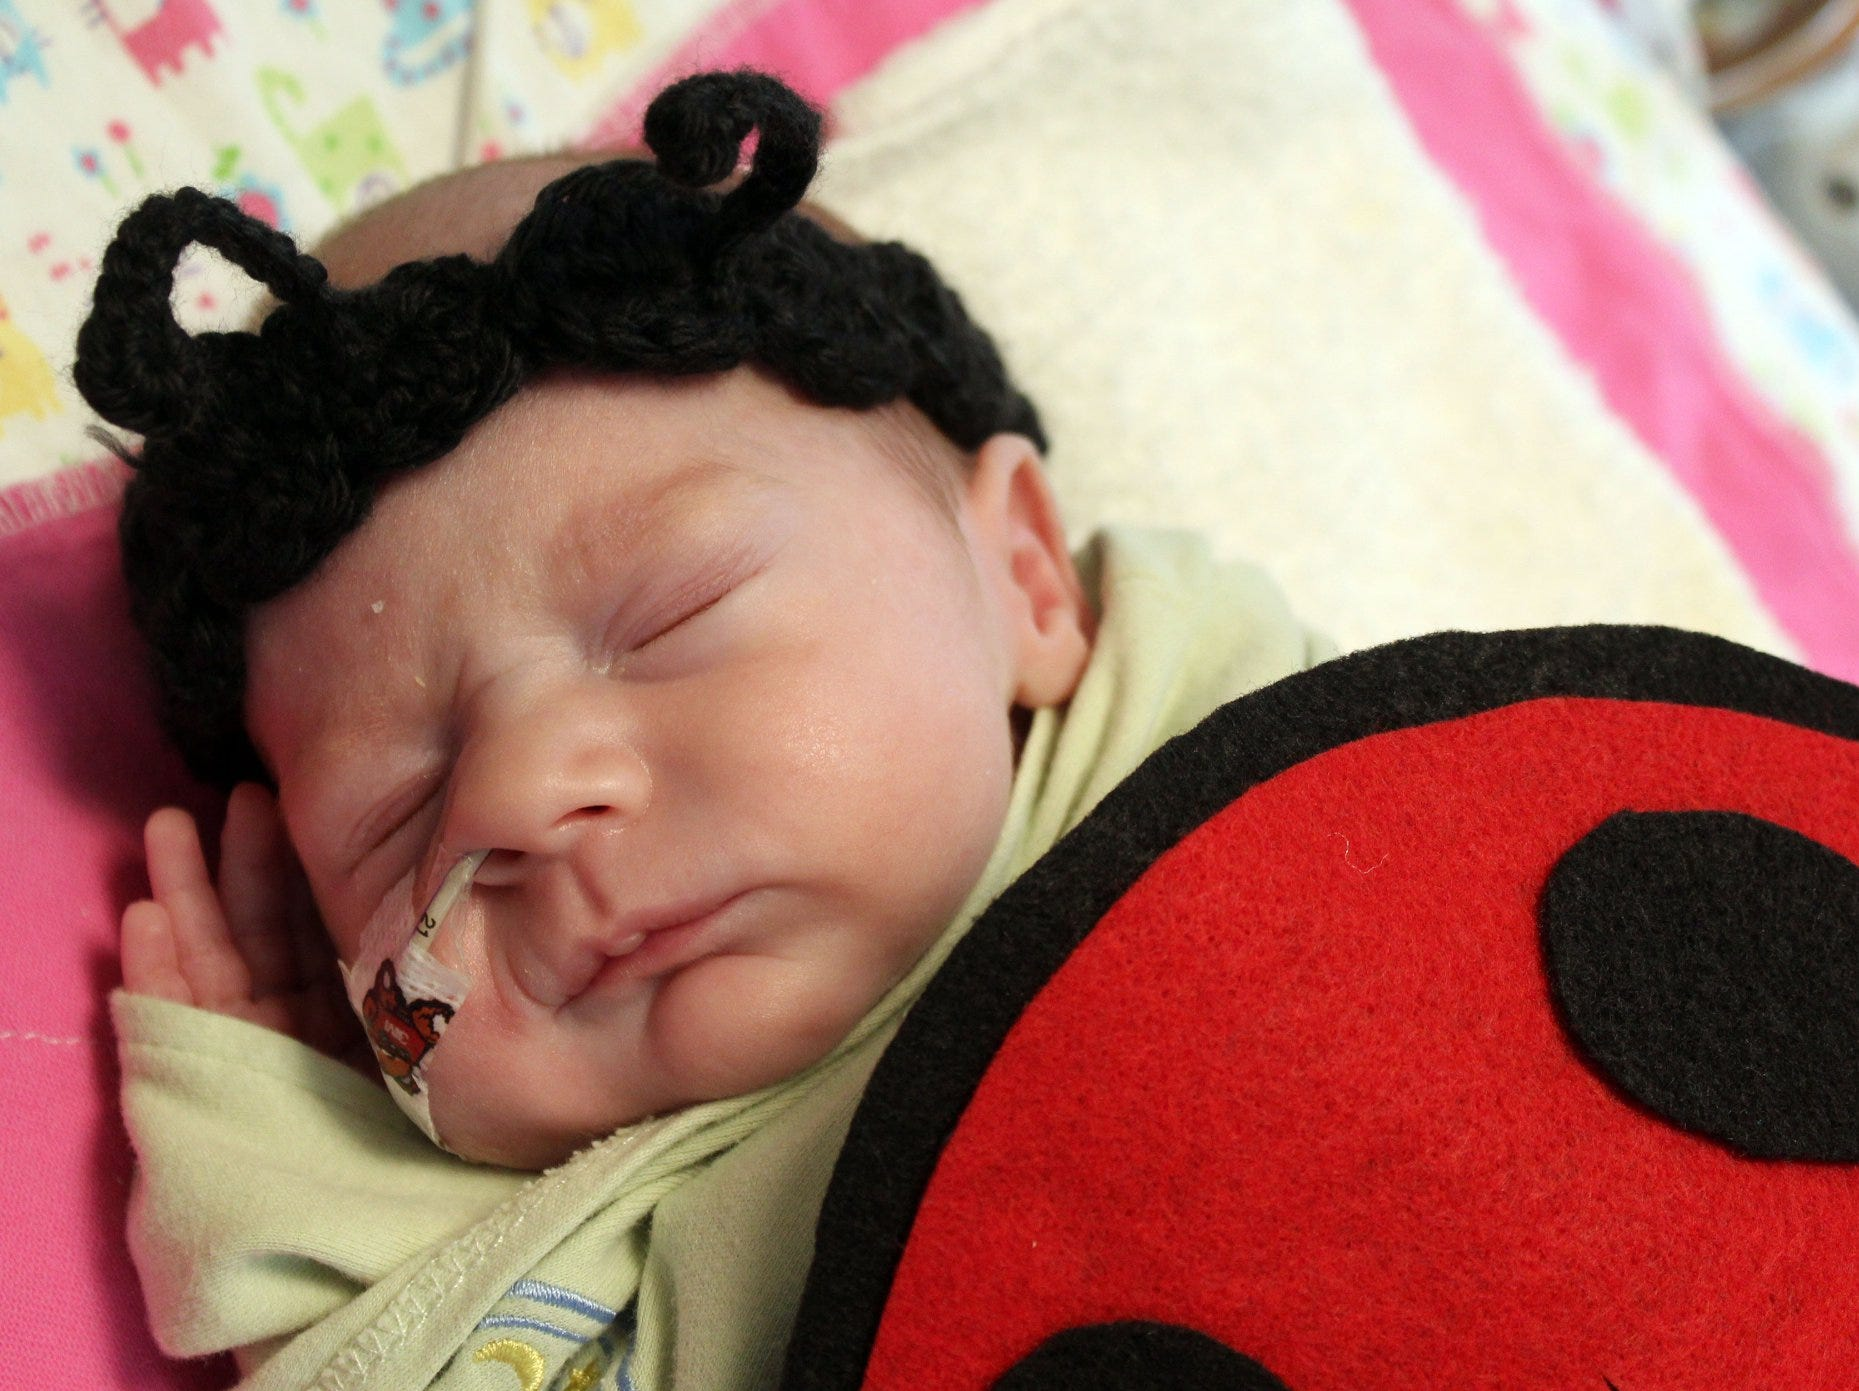 Brooklyn Opsahl was born Oct. 7. Babies in the Neonatal Intensive Care Unit sported handmade costumes and crocheted hats, donated by volunteers with the March of Dimes on Wednesday, Oct. 31, 2018 at St. Cloud Hospital.